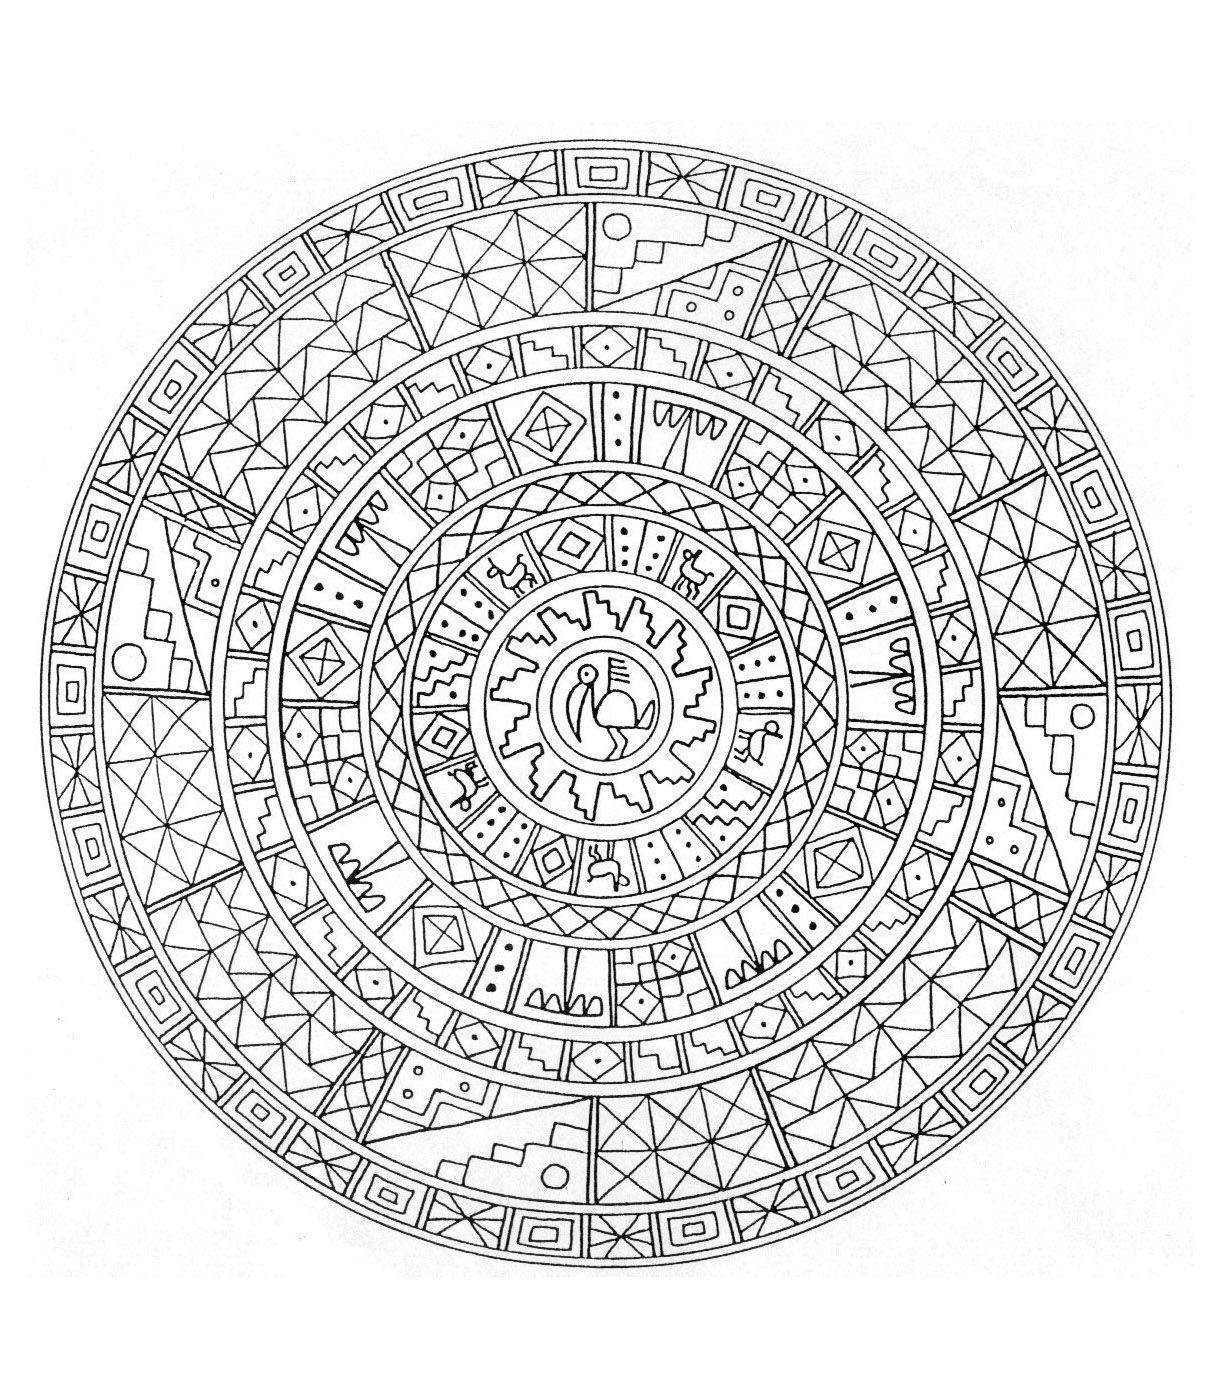 Hard mandala coloring pages for adults - To Print This Free Coloring Page Coloring Mandala Difficult 6